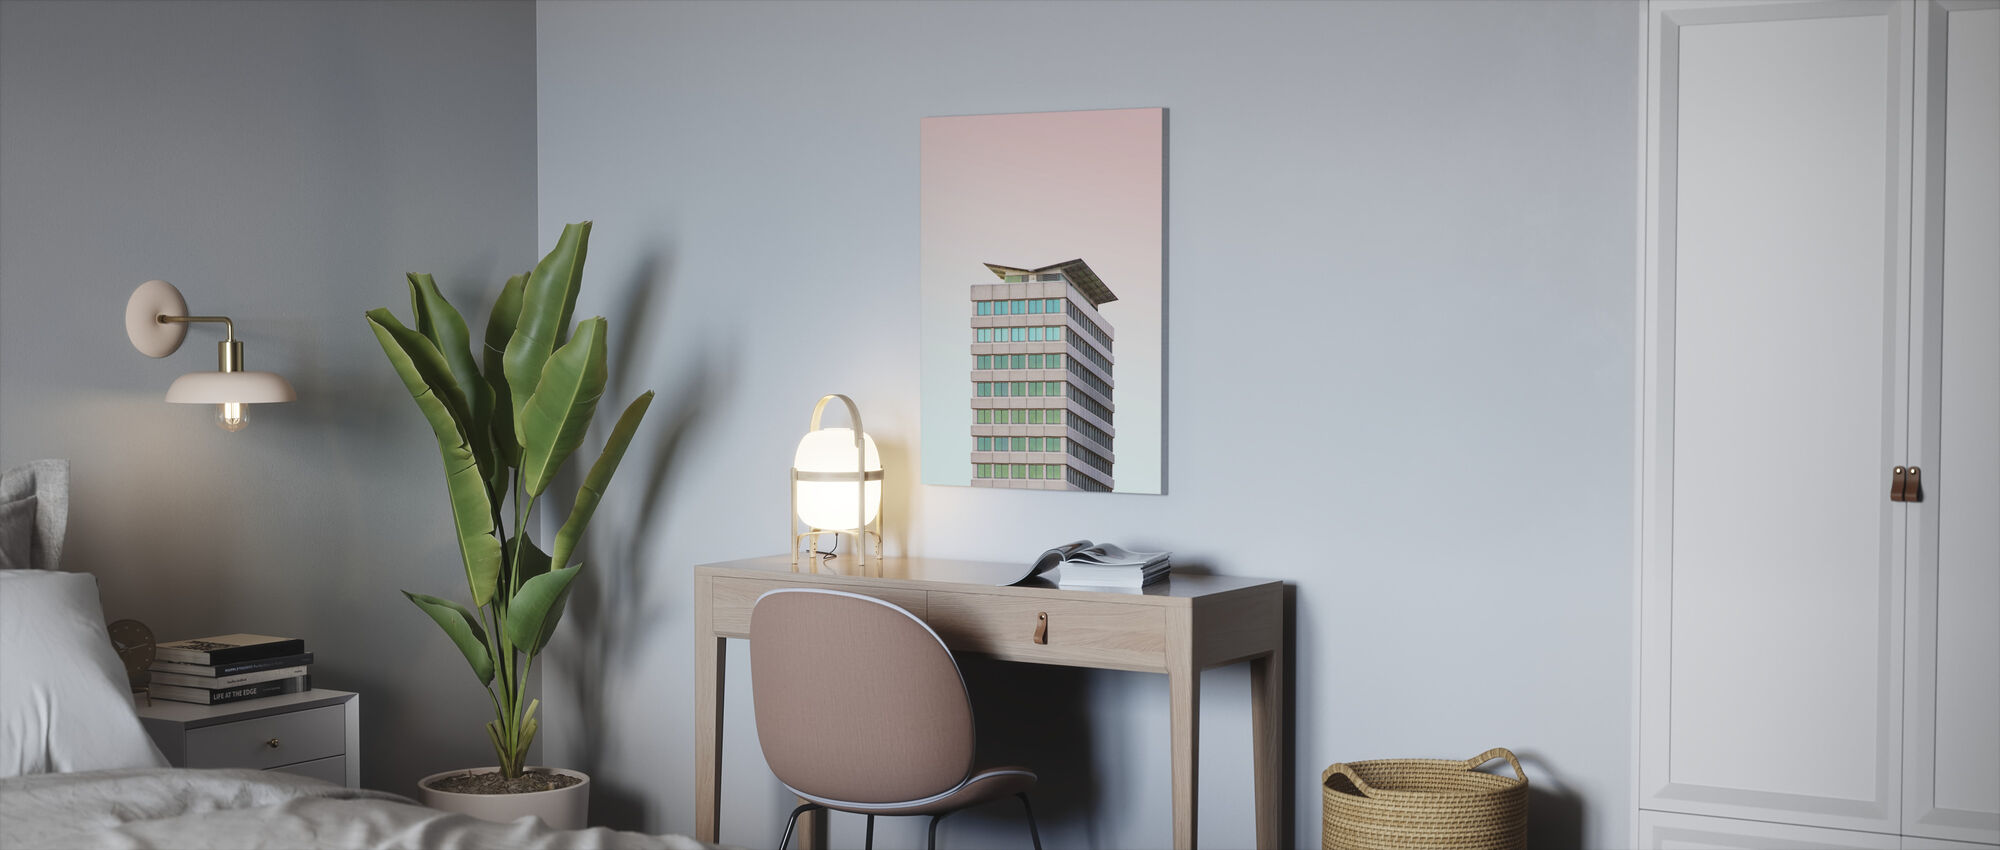 Tower Block Building - Canvas print - Office